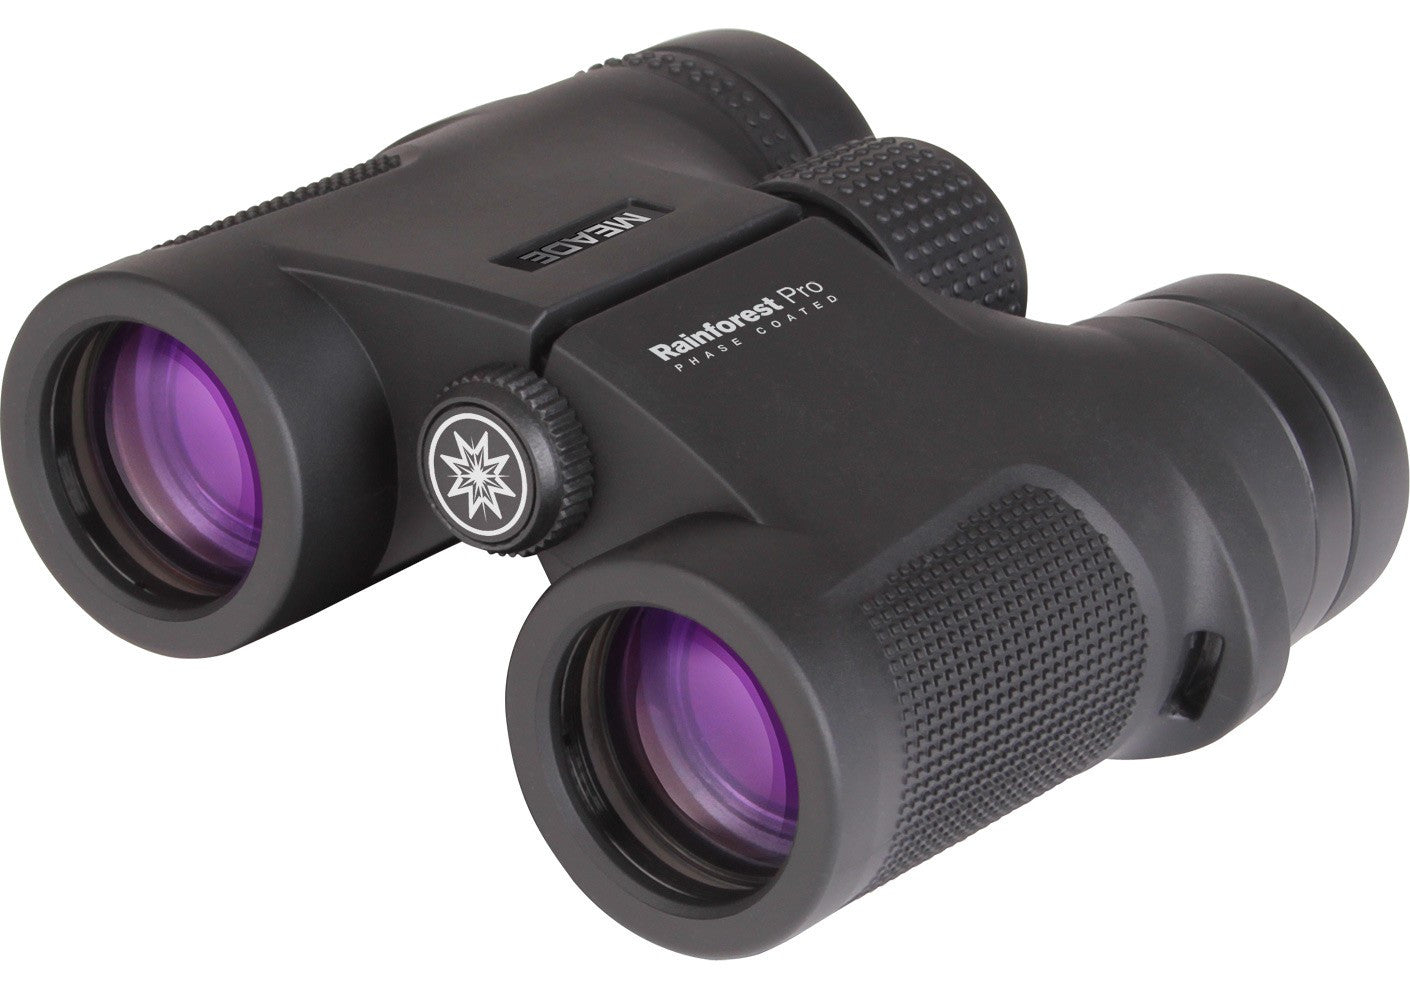 Meade Rainforest Pro Binoculars - 10x32 125041 - Sport Optics - Meade - Helix Camera